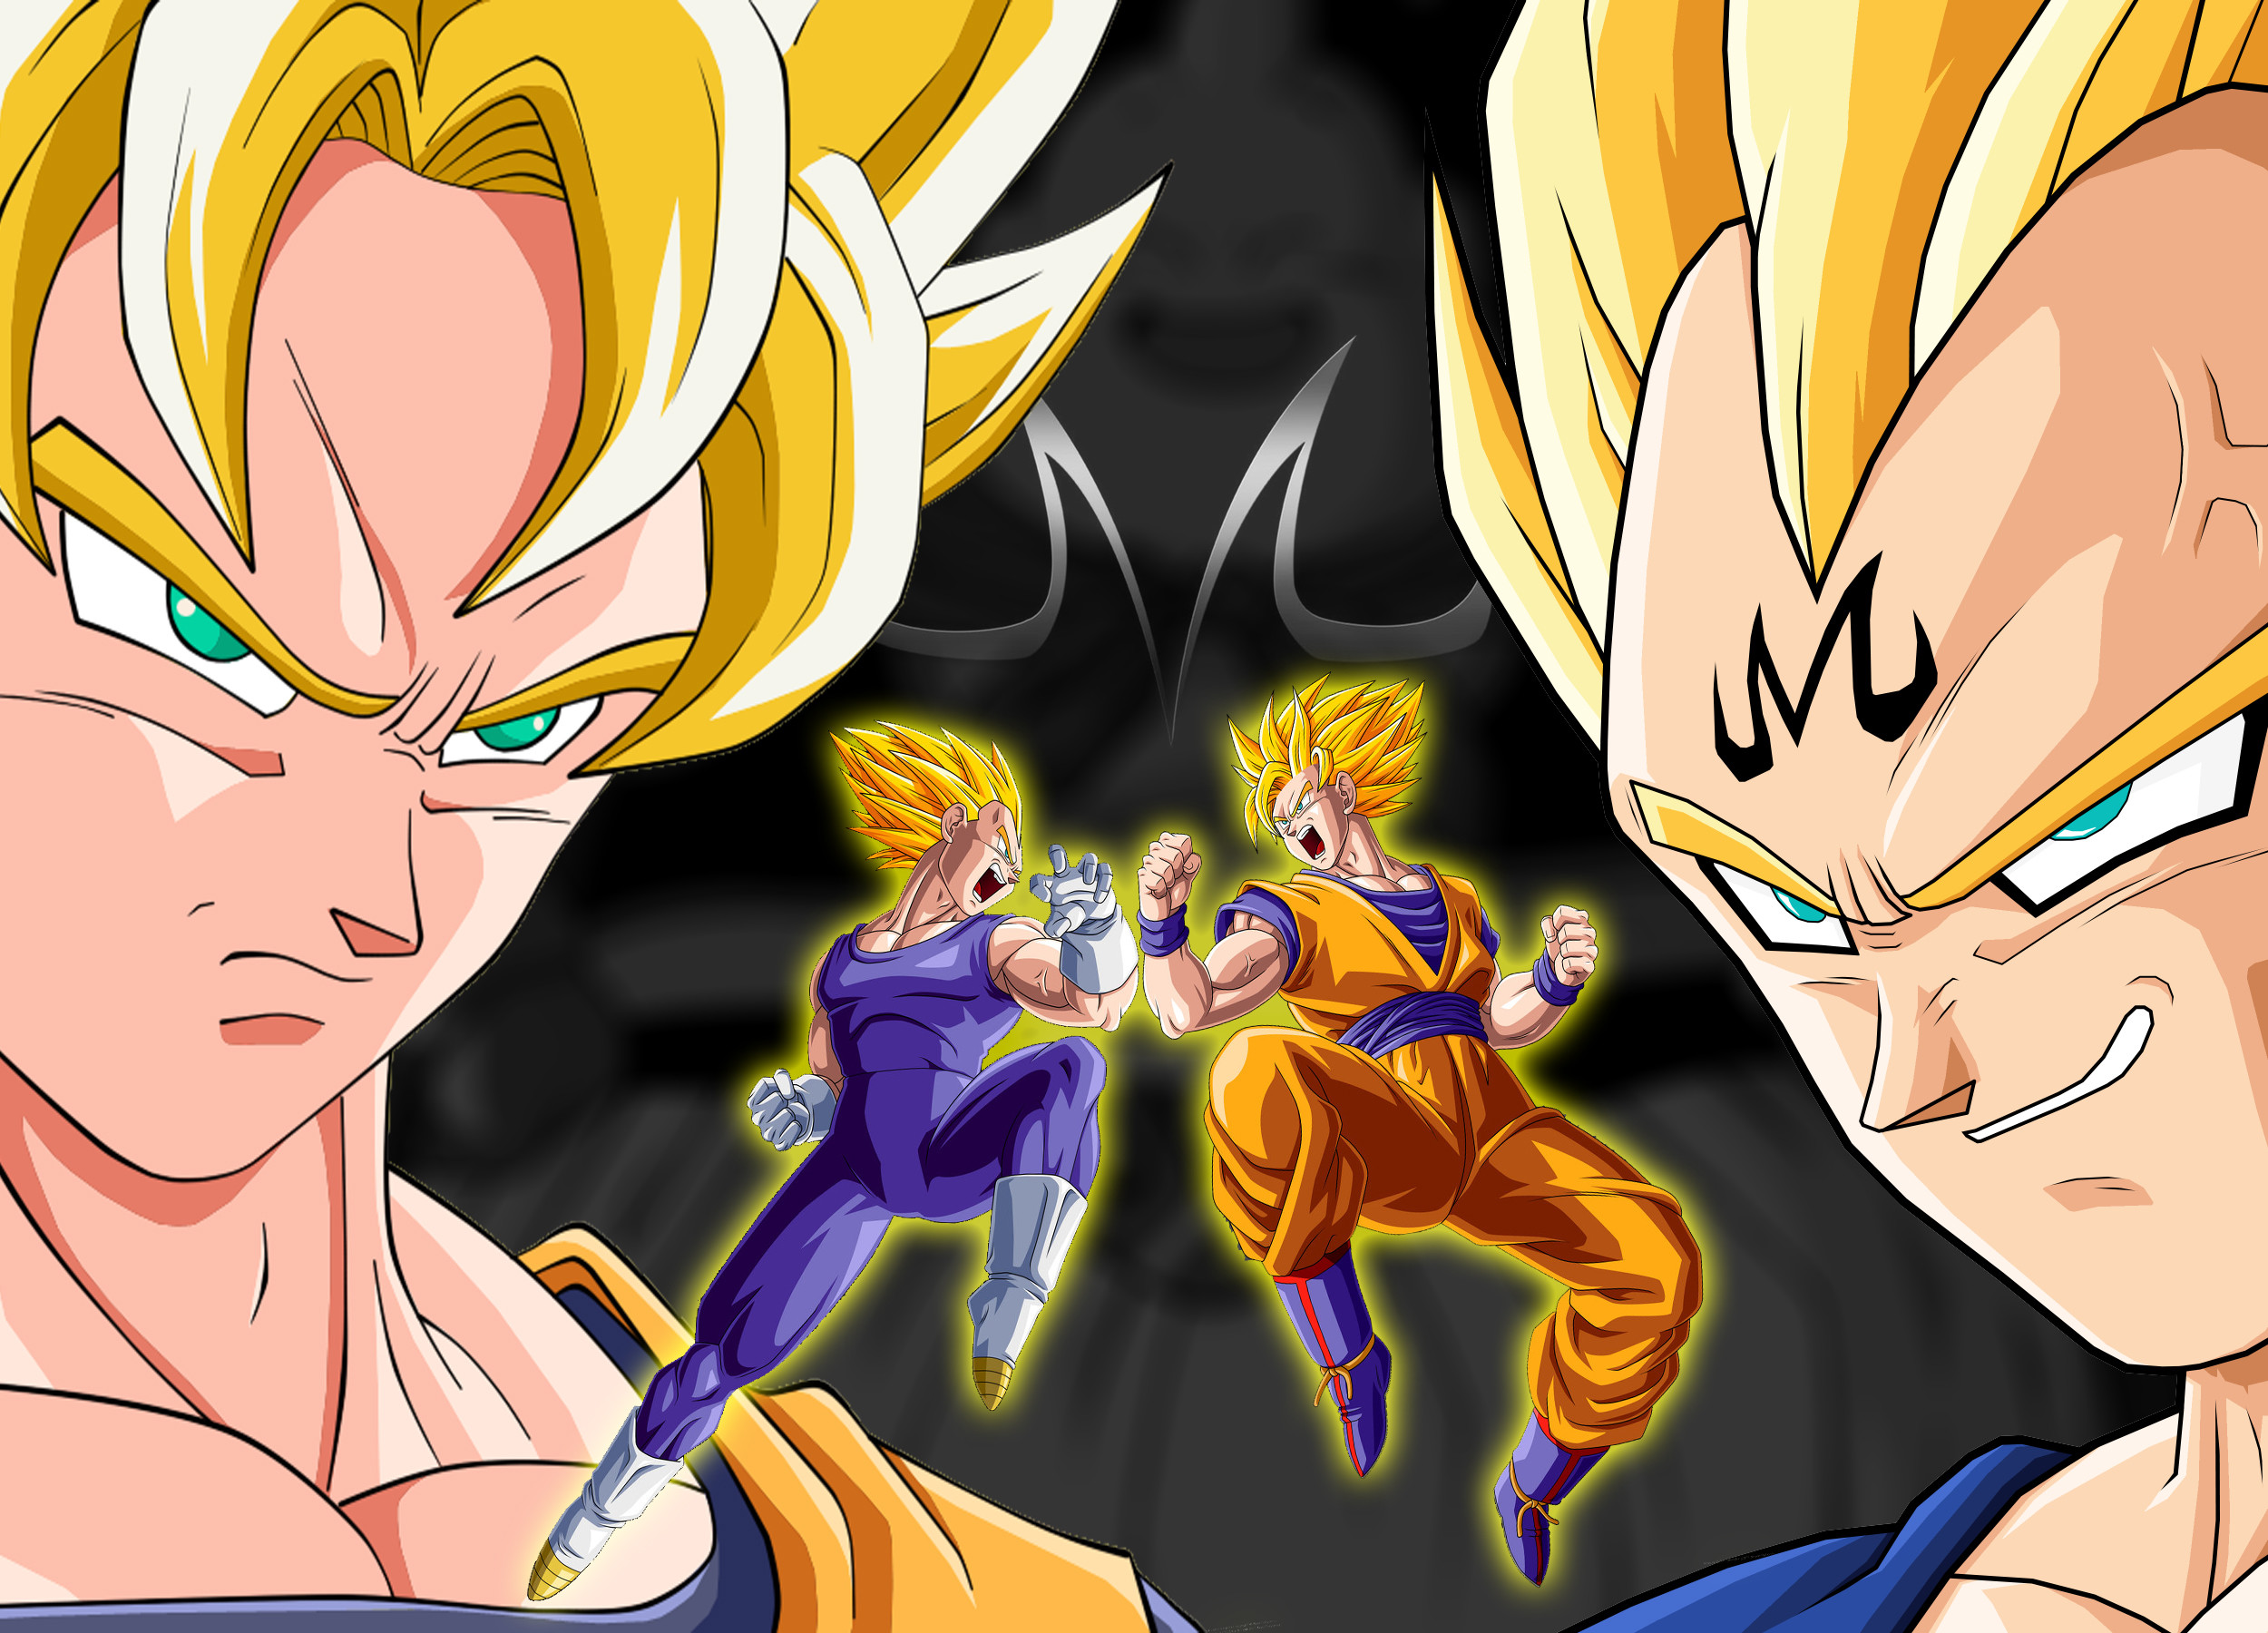 1920x1080 Dragonball Z GT Minimalist Art Wallpaper Volume 1